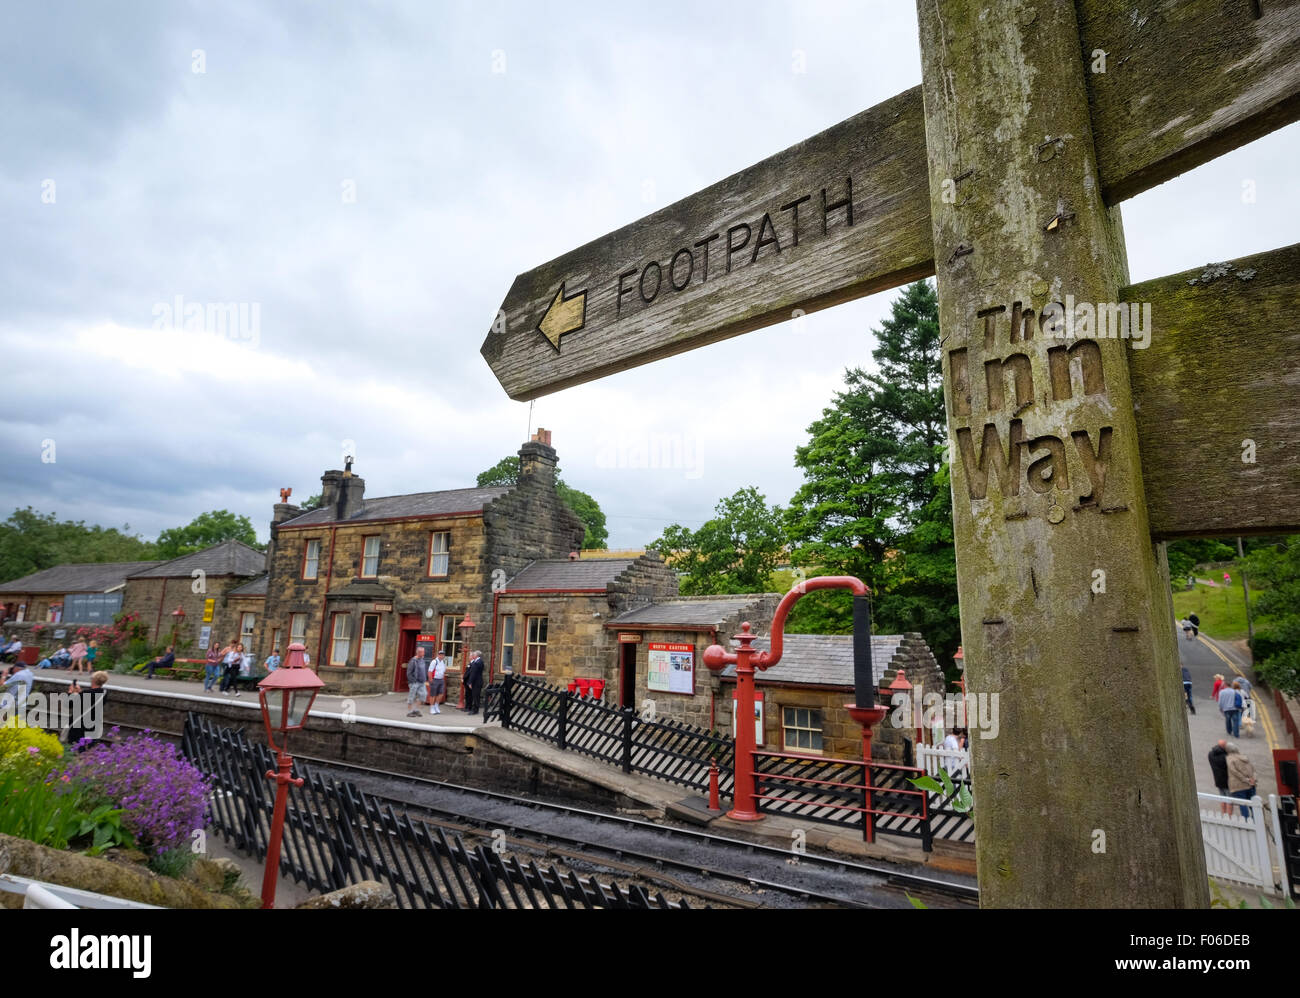 Sign post for The Inn Way at Goathland railway station in North Yorkshire National Park - Stock Image